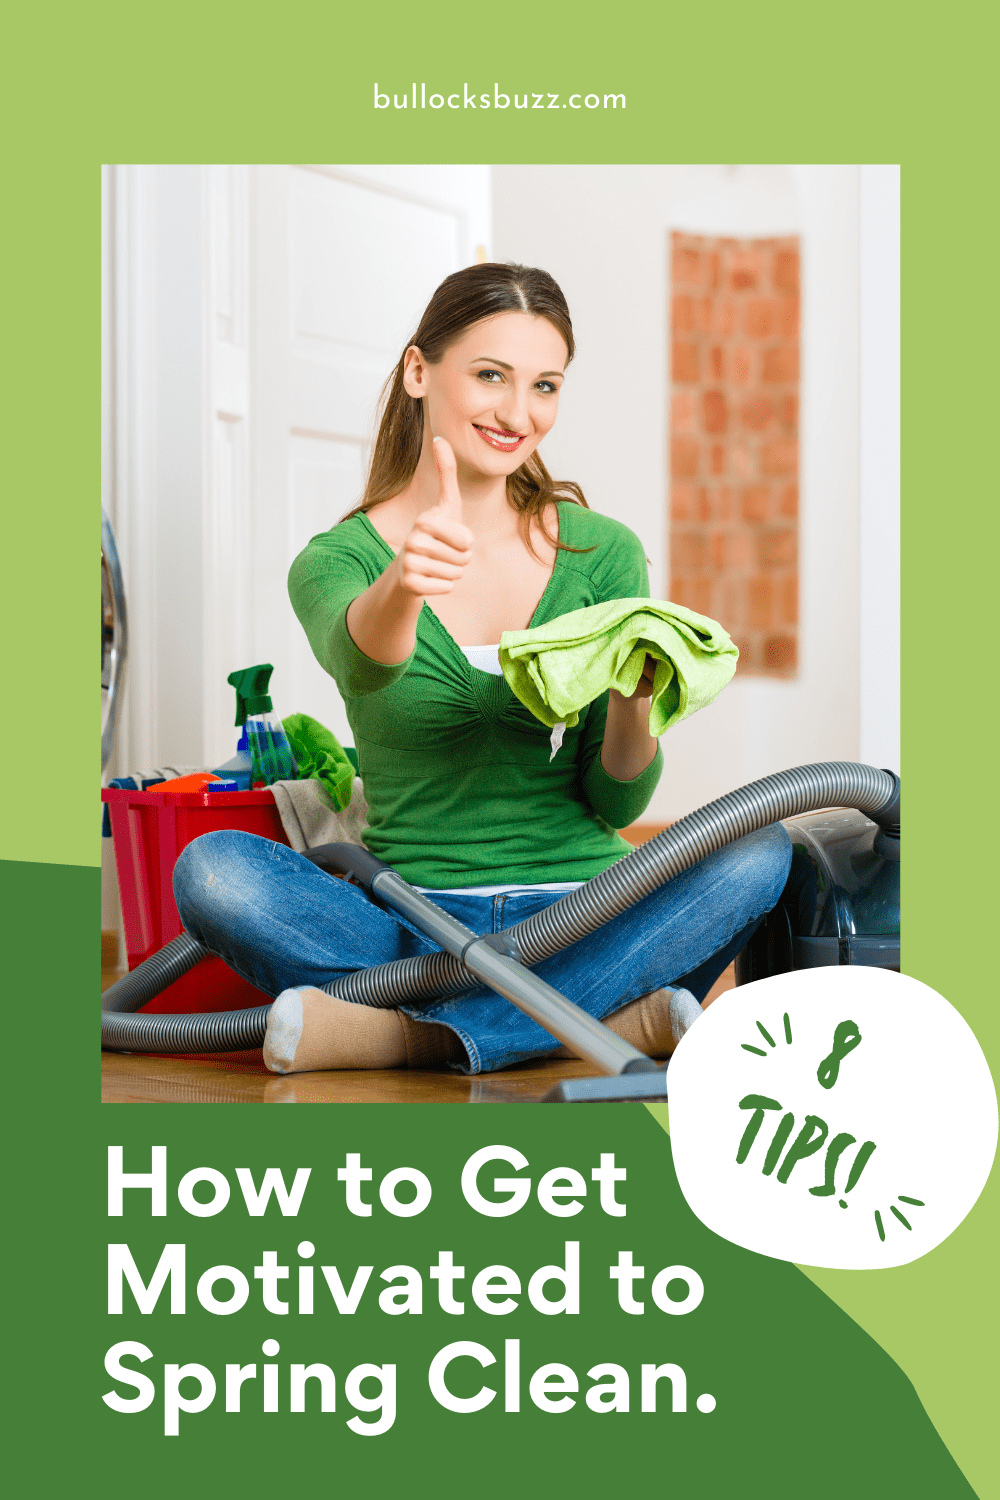 If you're not motivated to get started on cleaning your home — check out this list of 8 ways to get motivated to Spring clean.